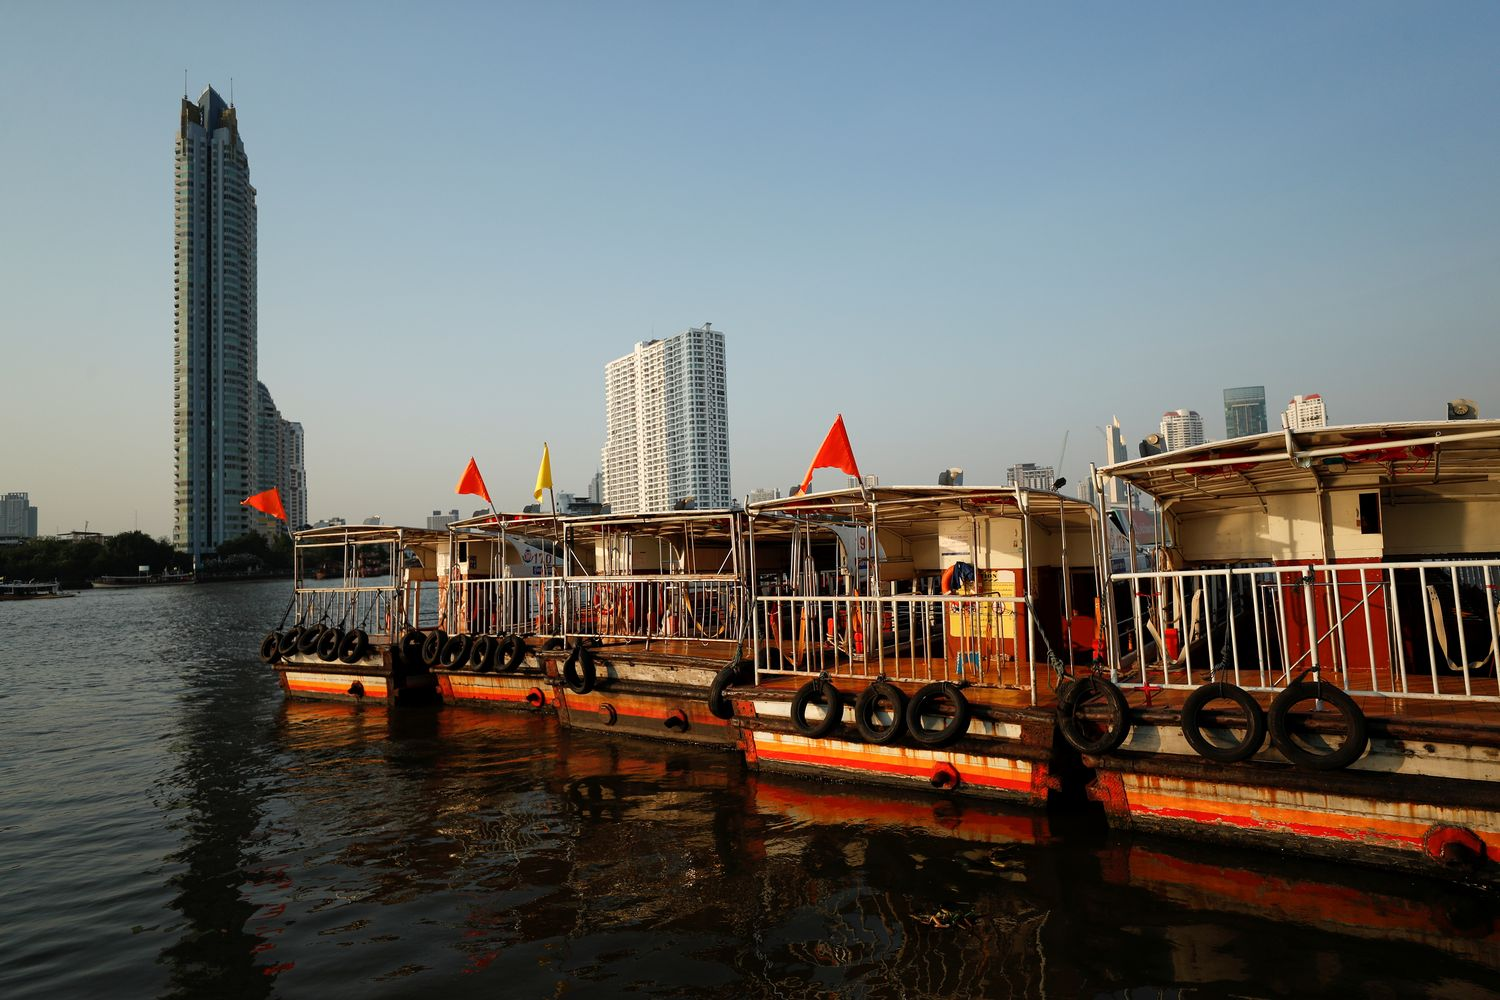 Boats that are used to transport tourists around the Chao Phraya river are seen idle in Bangkok on Feb 4 due to travel bans and border closures. (Reuters photo)